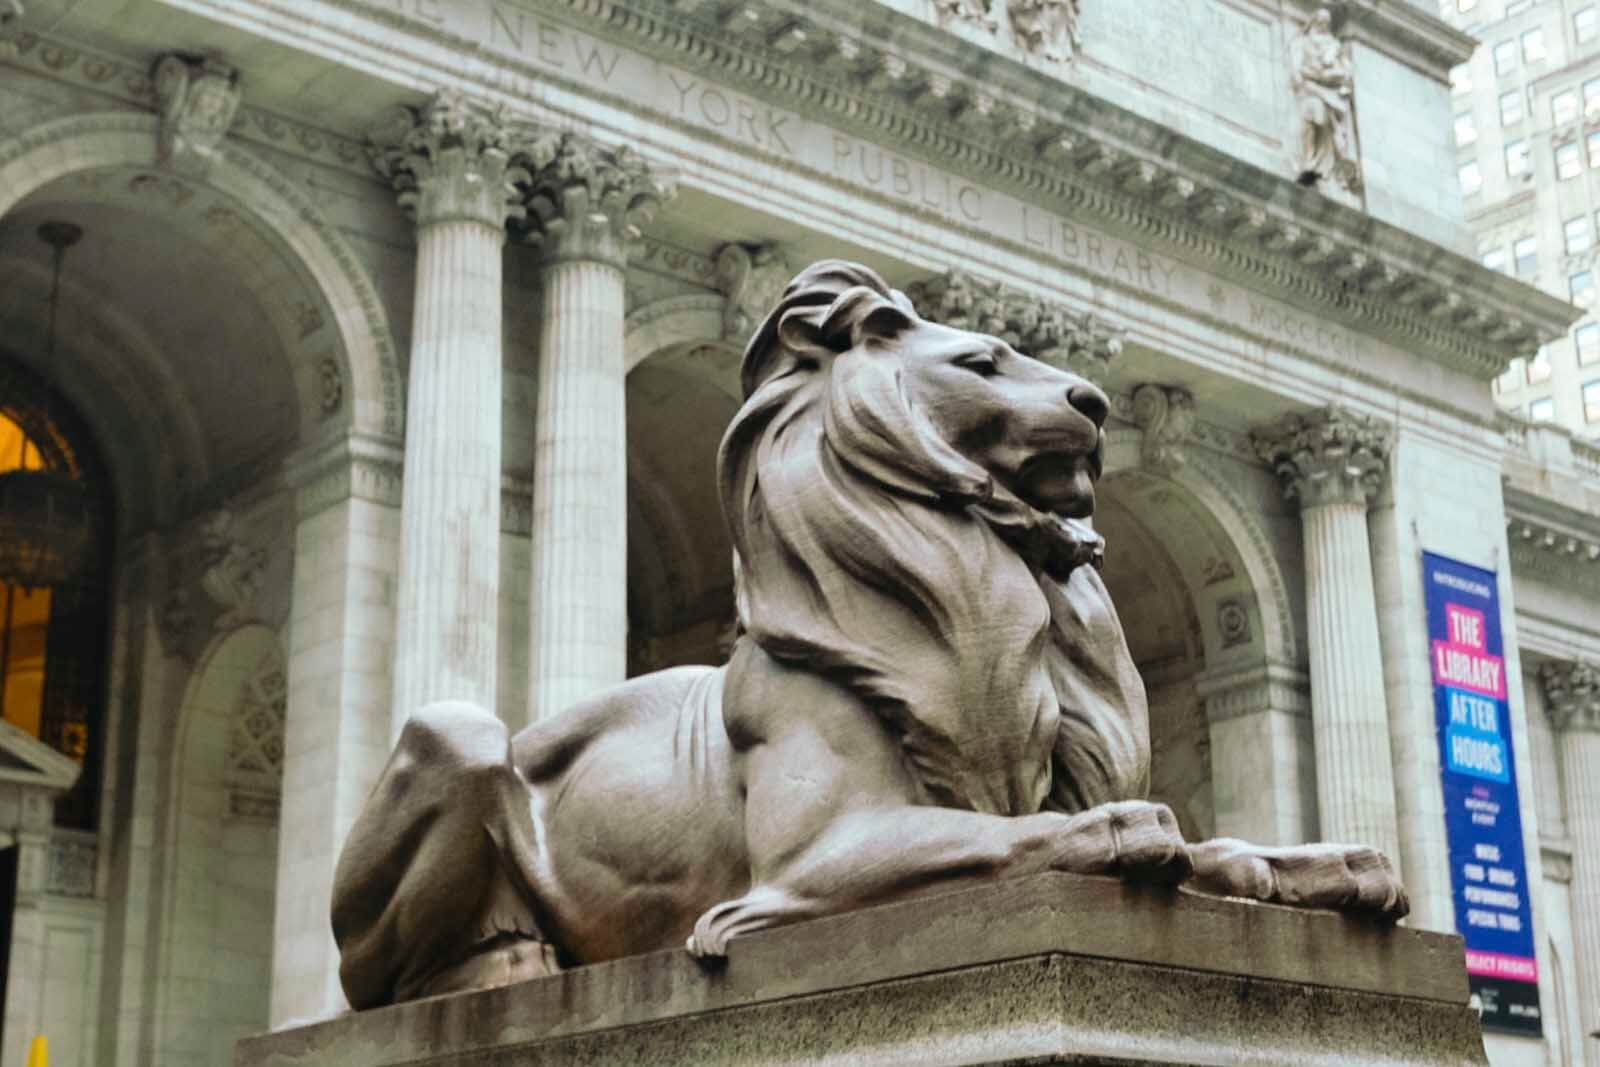 famous lion statues outside New York Public Library in NYC where Ghostbusters was filmed